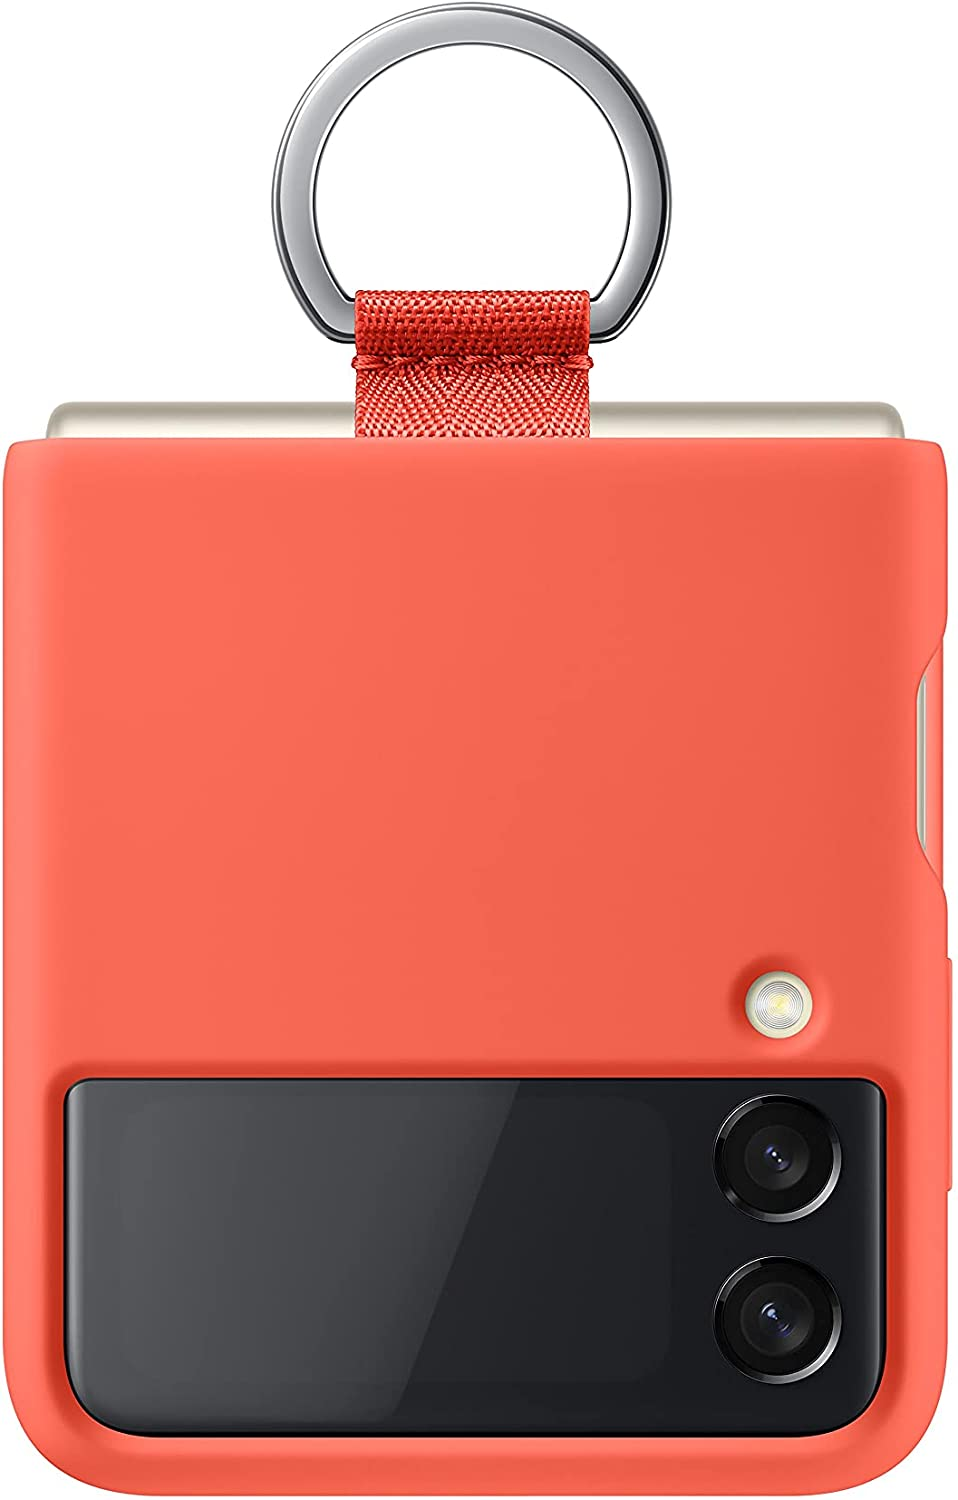 Samsung Galaxy Z Flip 3 Phone Case, Silicone Protective Cover with Ring, Heavy Duty, Shockproof Smartphone Protector, US Version, Coral